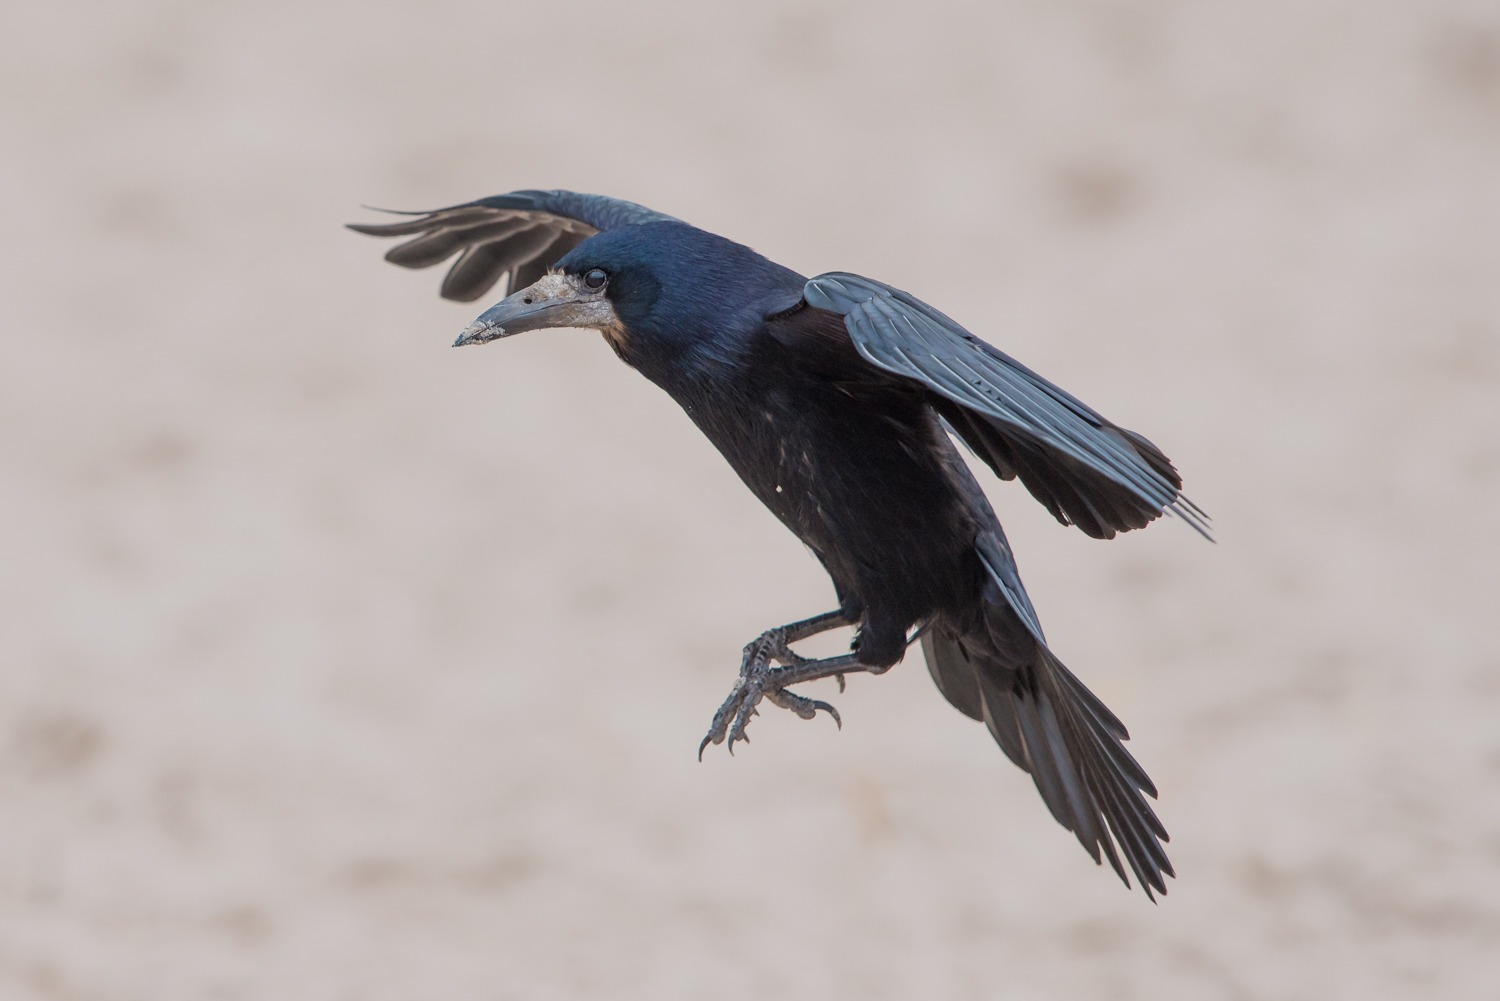 Rook in flight. British birds, wildlife